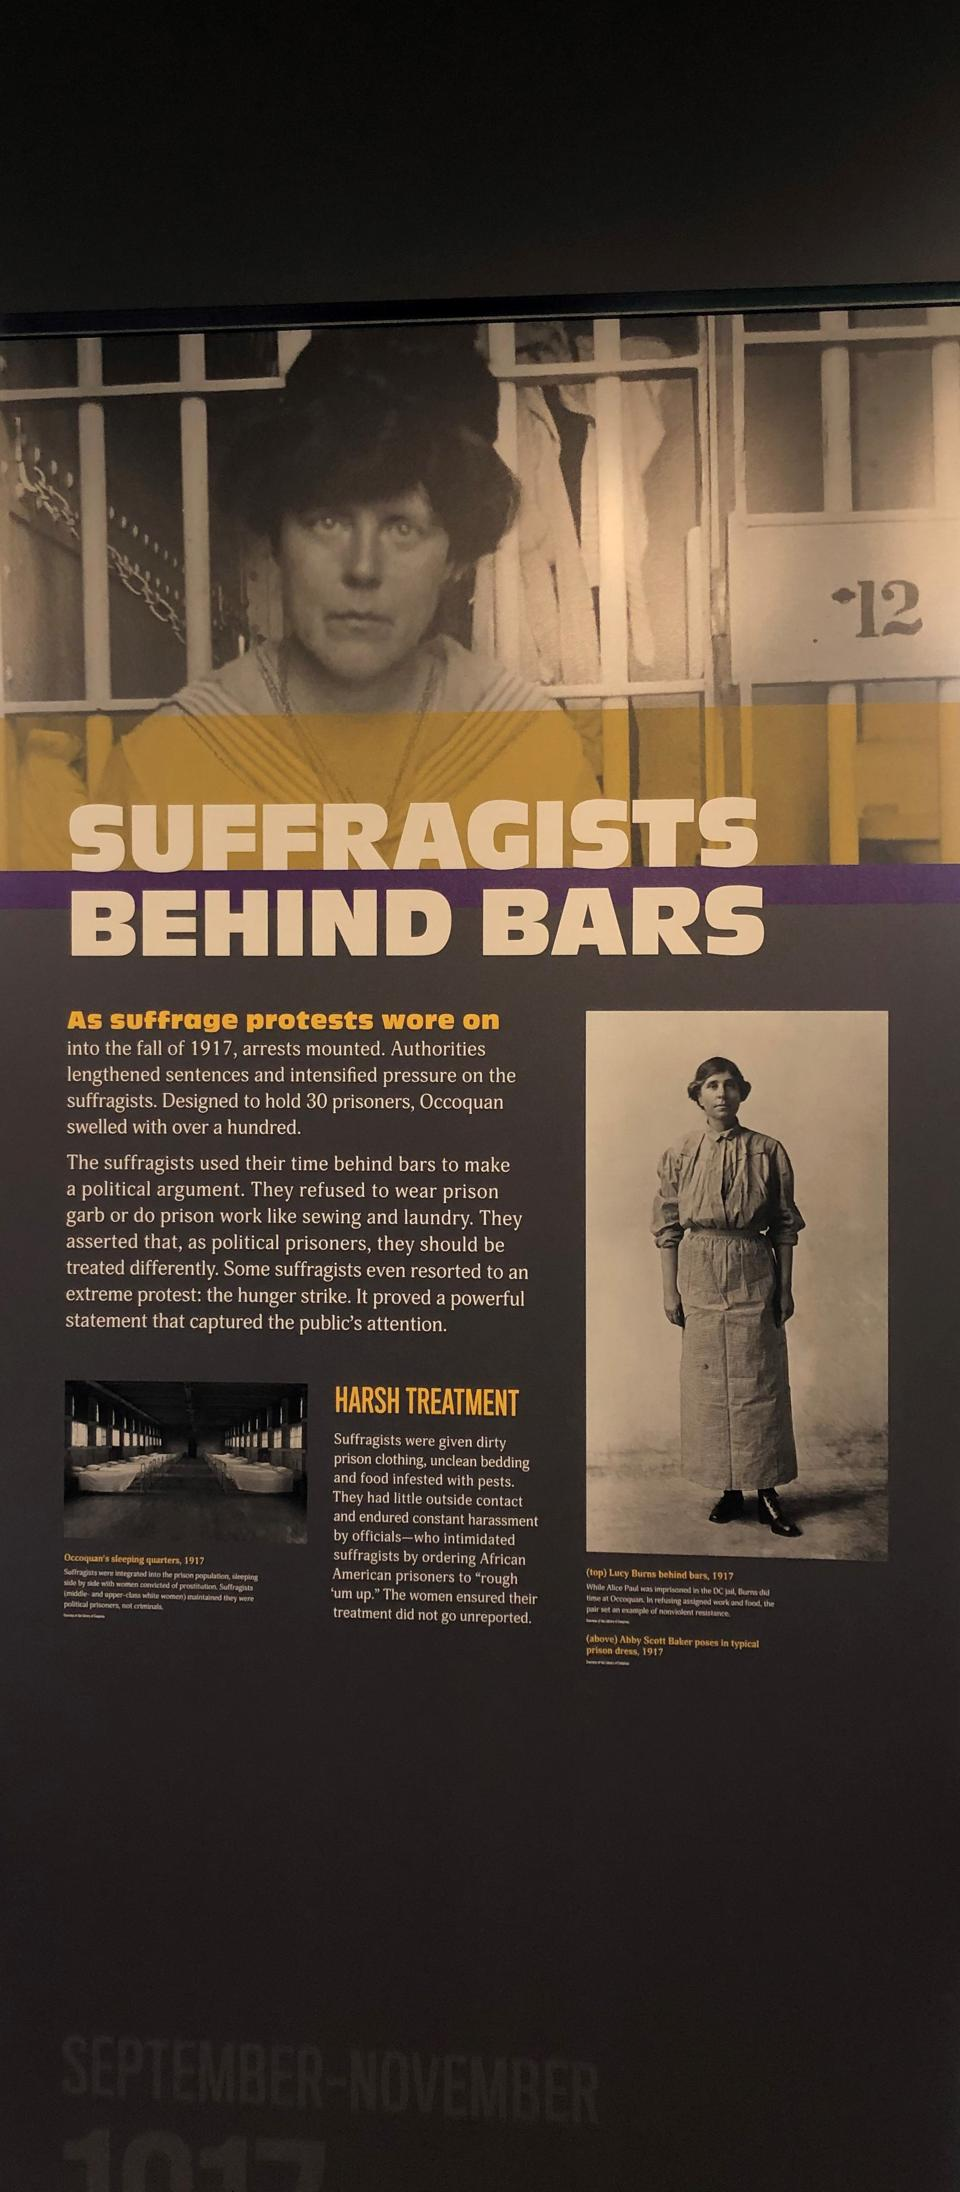 Display on jailed suffragists, Lucy Burns Museum